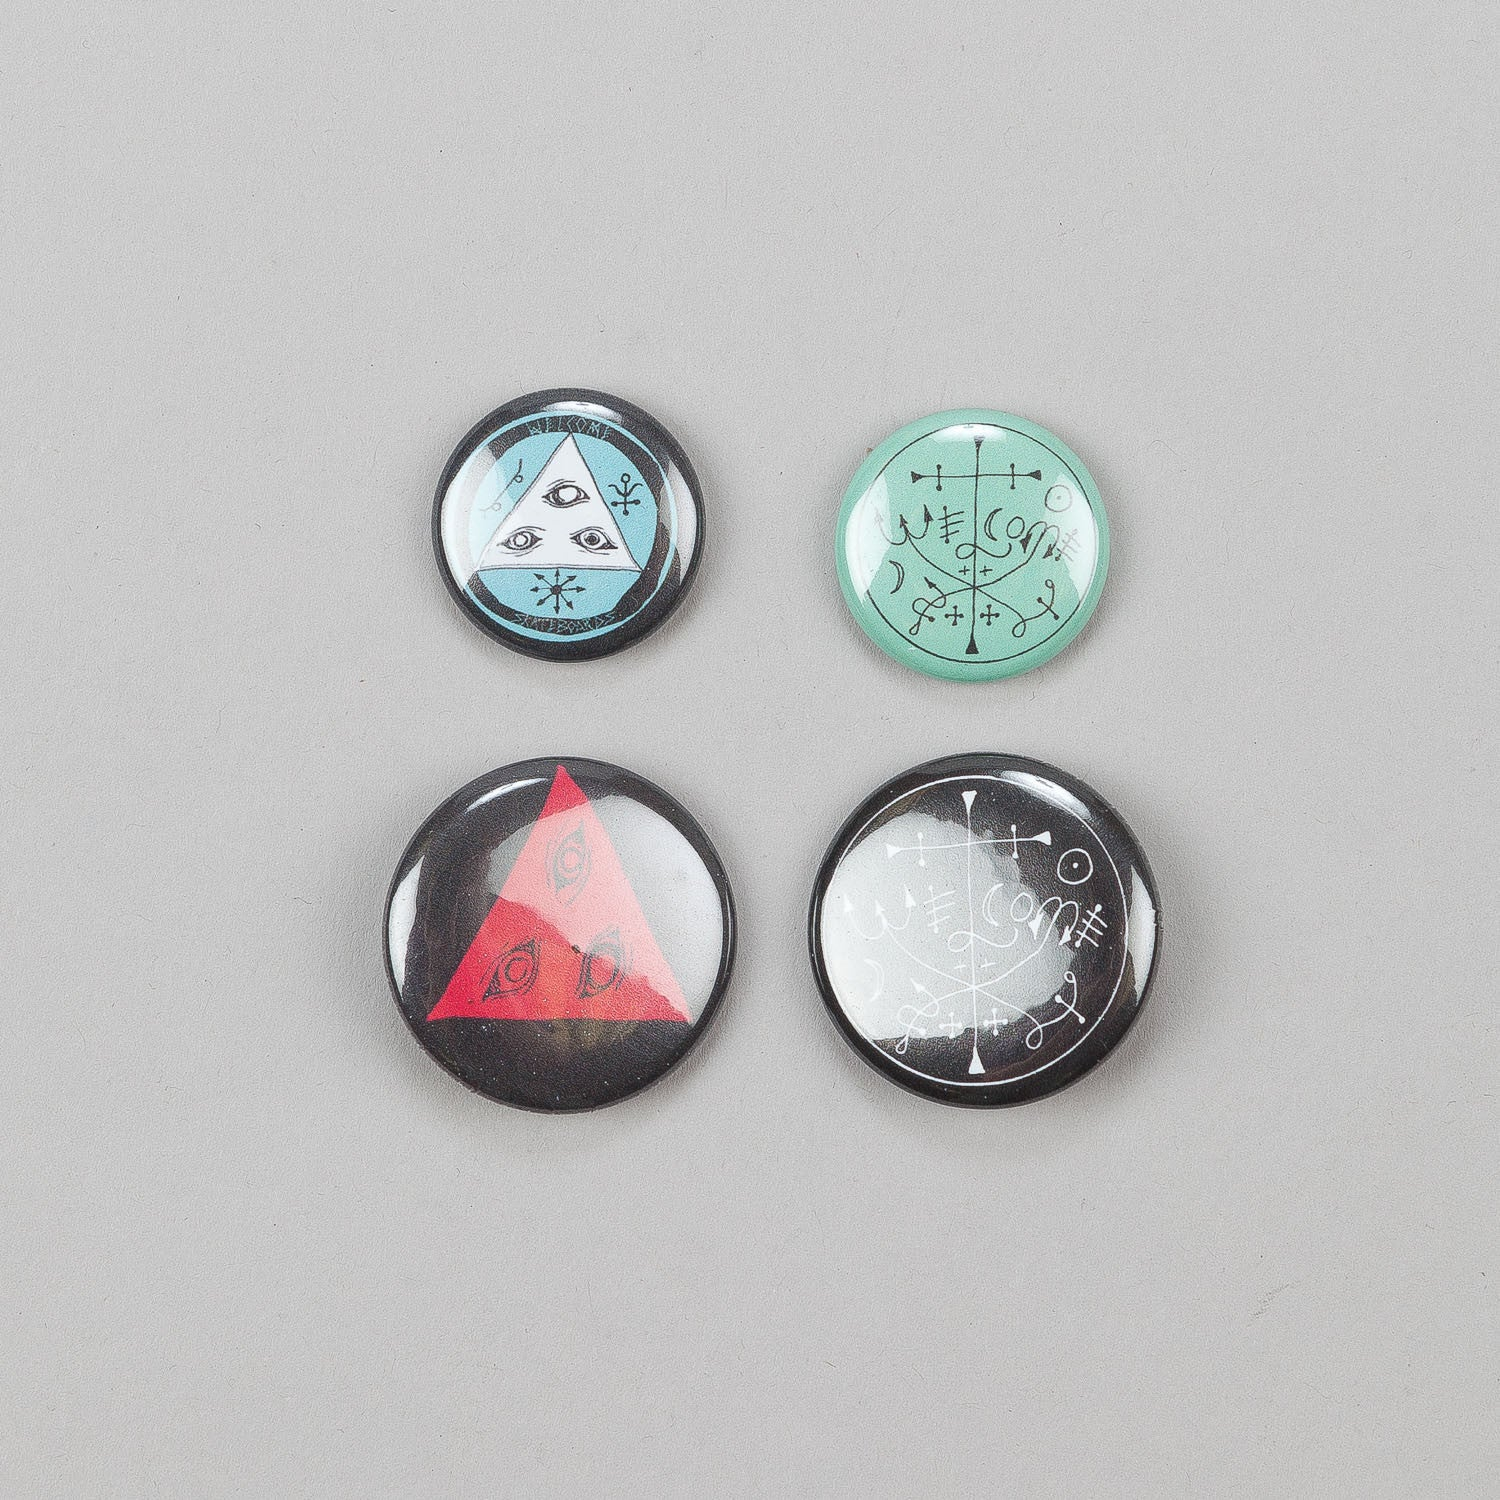 Welcome Orbs Button Badge Pack of 4